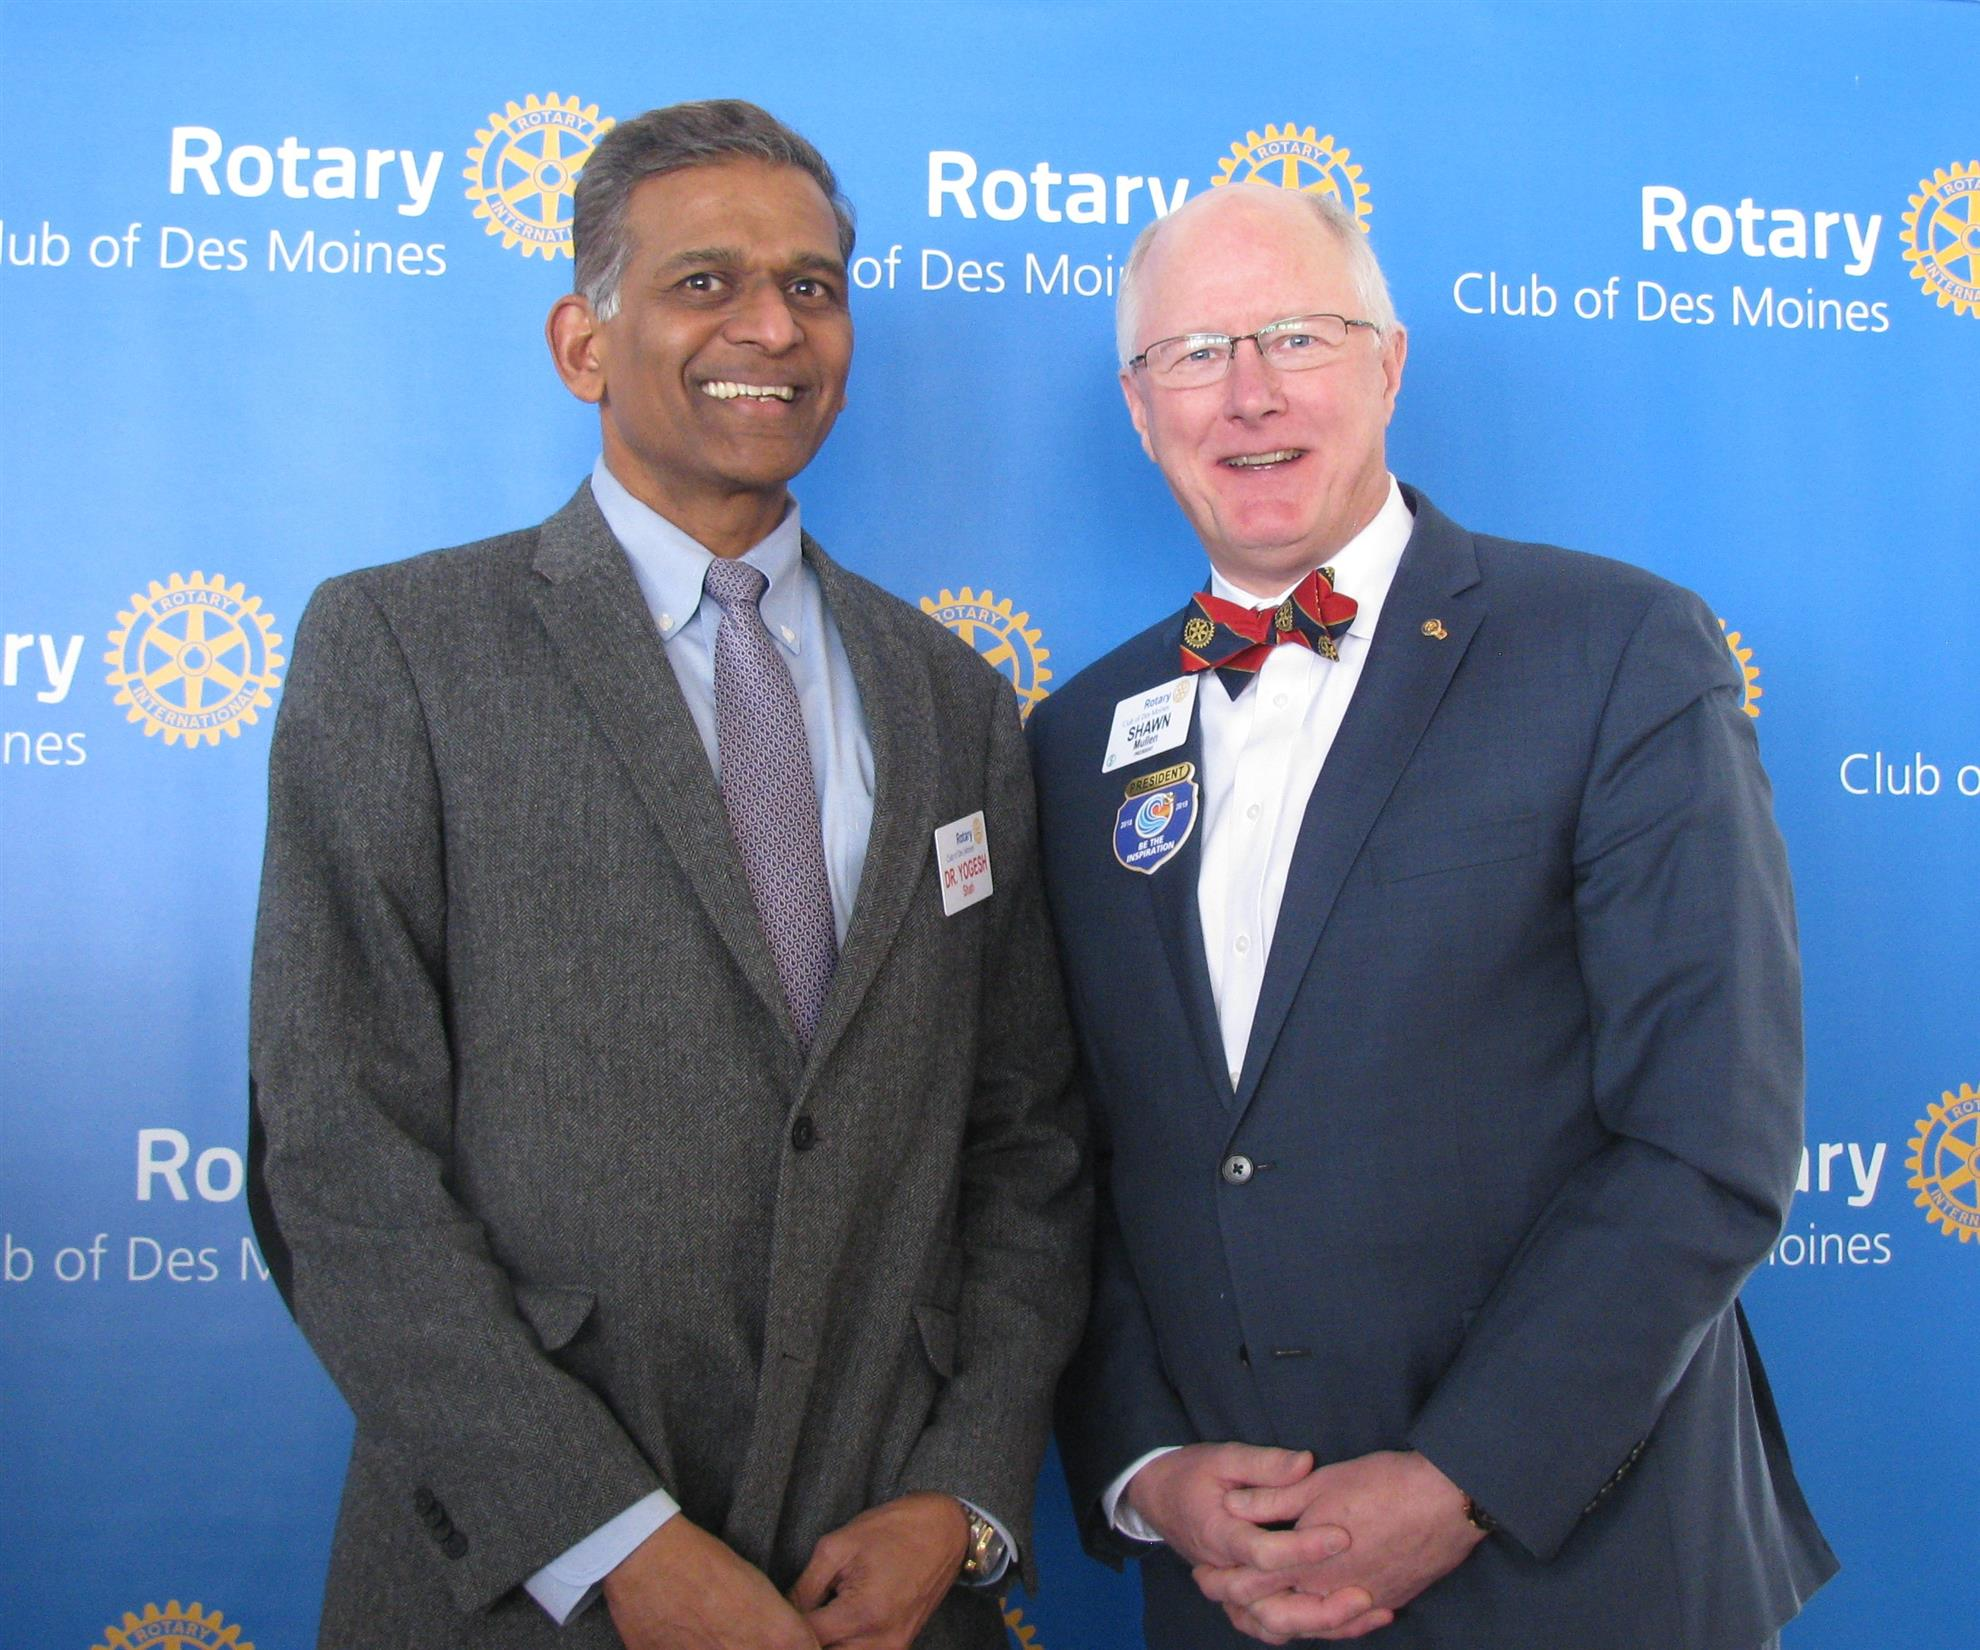 Stories | Rotary Club of Des Moines